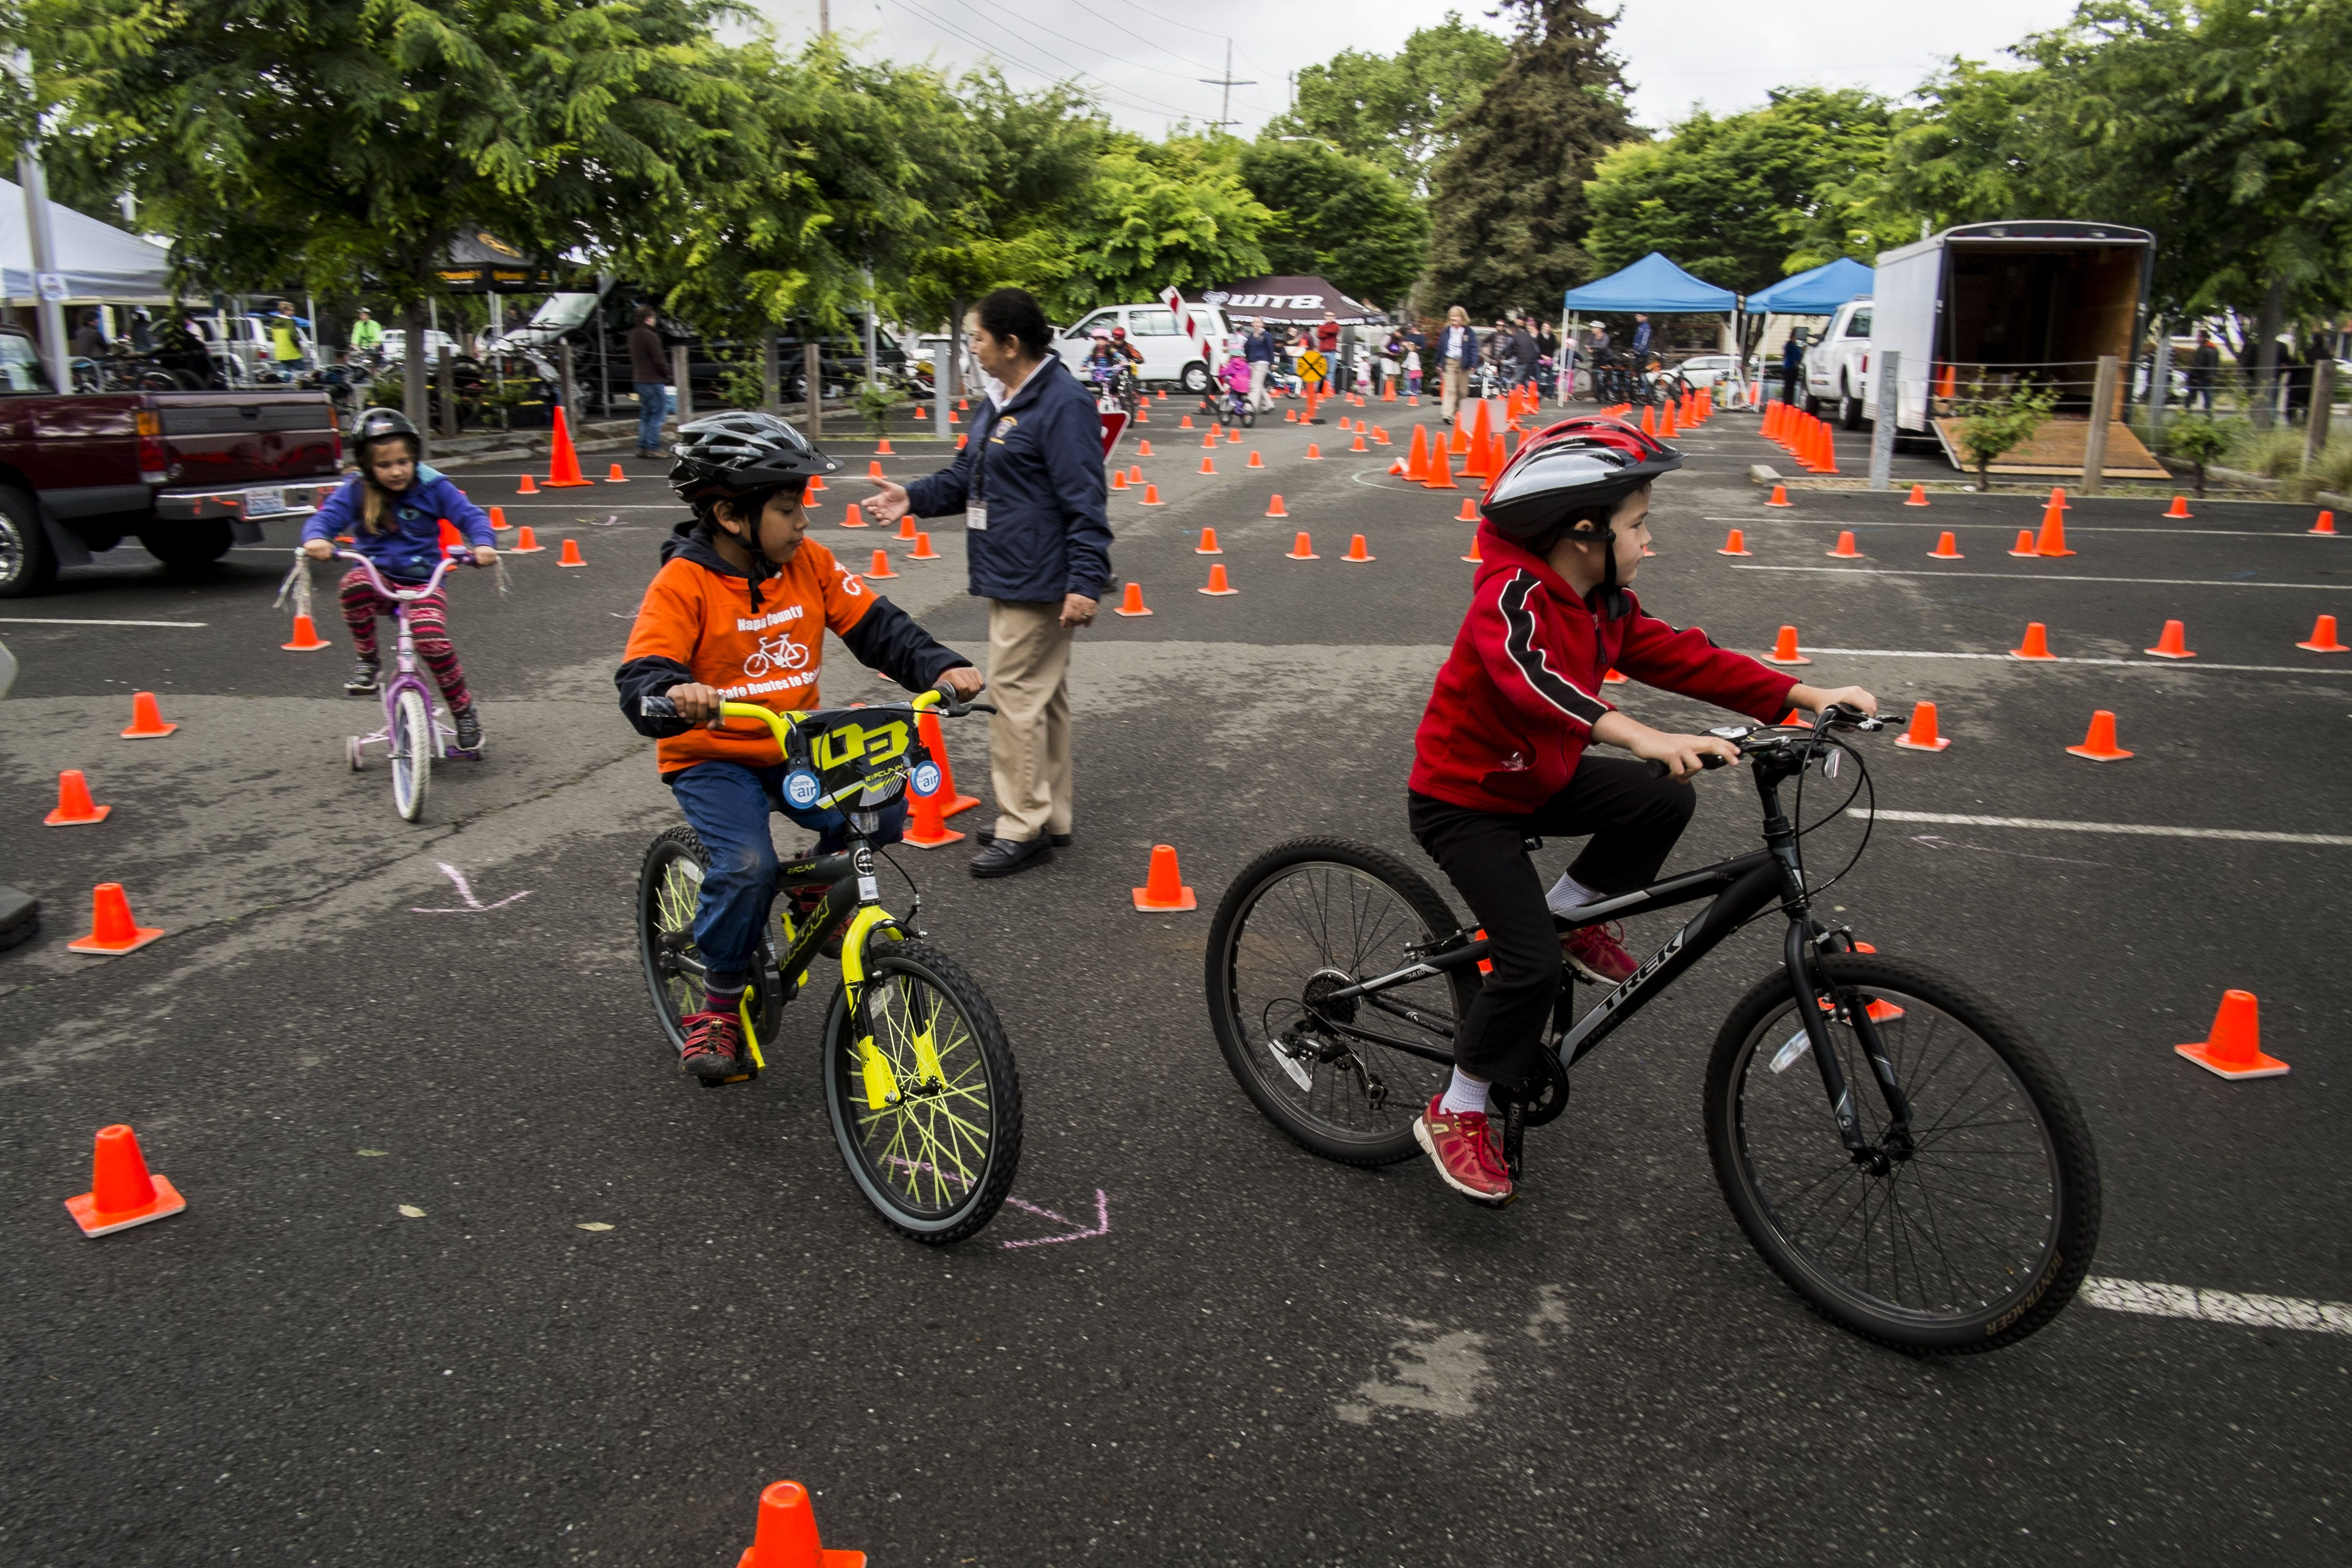 Warming up at the Napa Police Department's bike rodeo - photo by Jason Tinacci